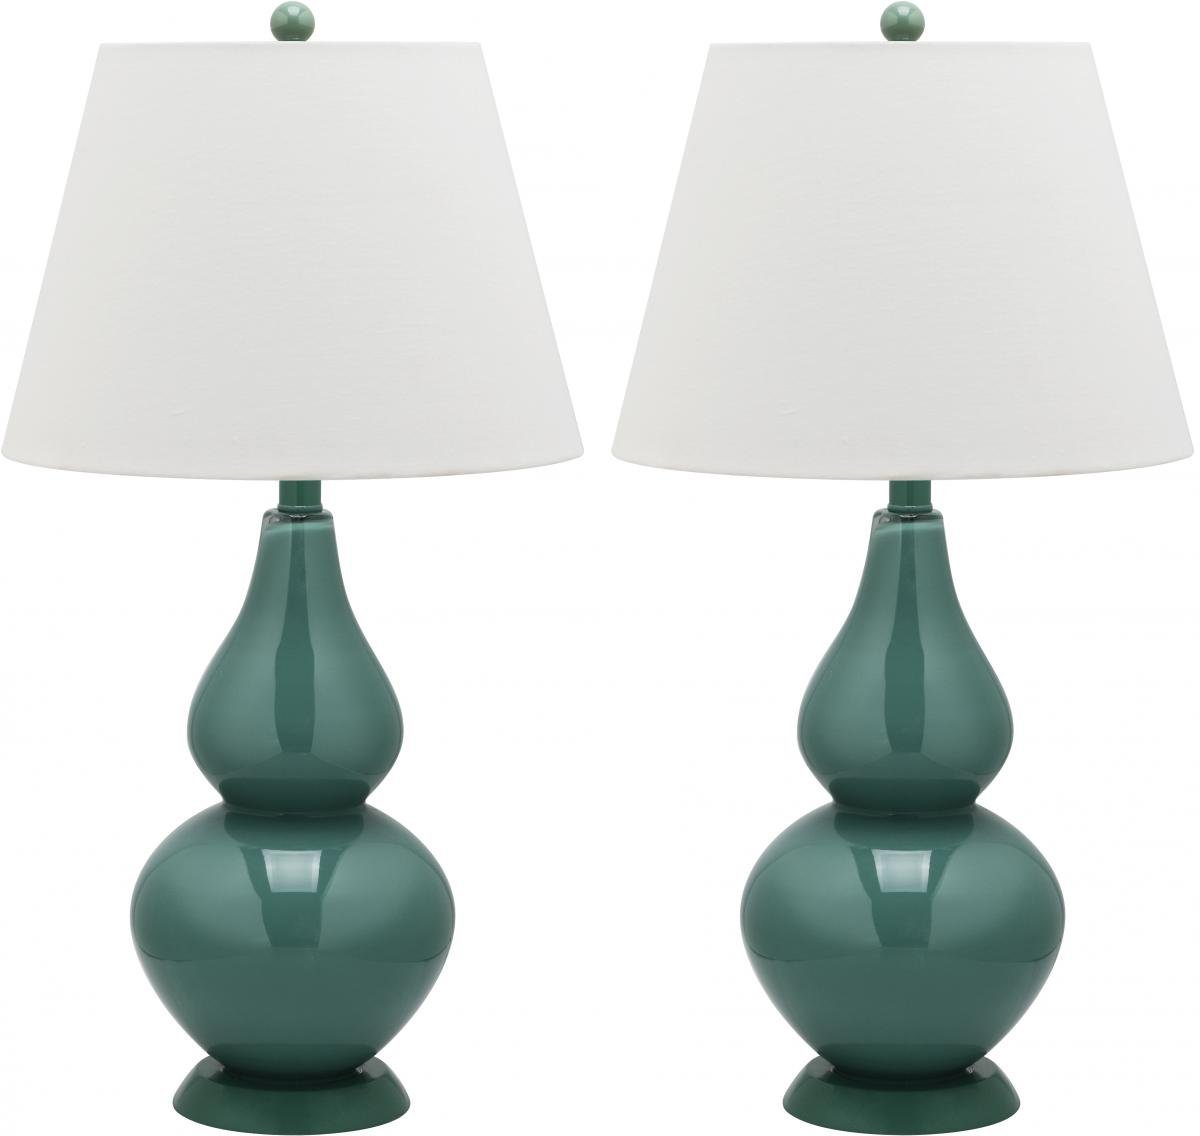 Safavieh Lighting Collection Cybil Double Gourd Table Lamp, Marine Blue, Set of 2